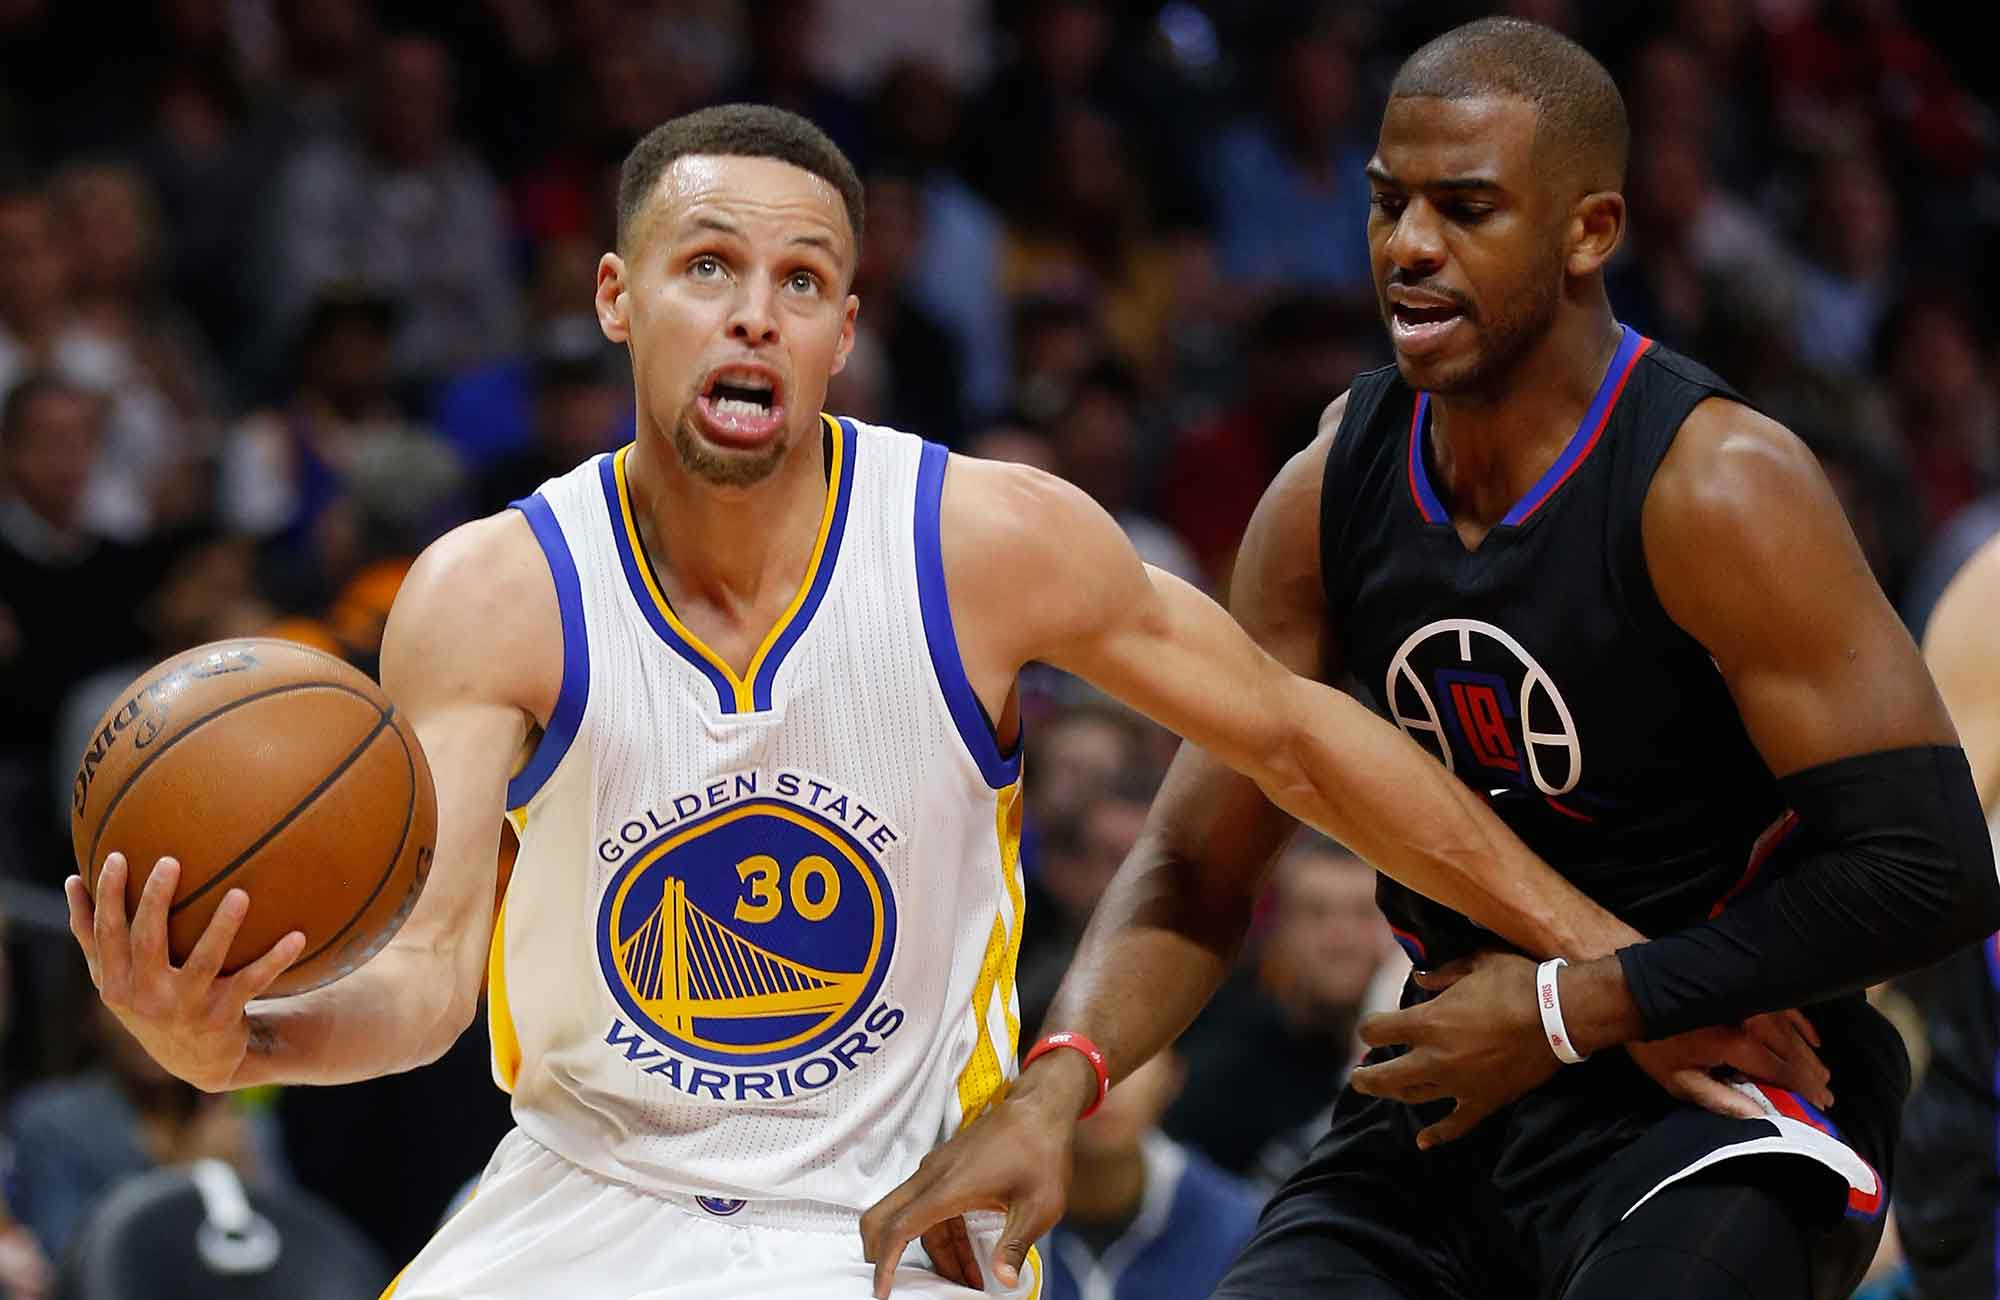 Steph Curry and Chris Paul